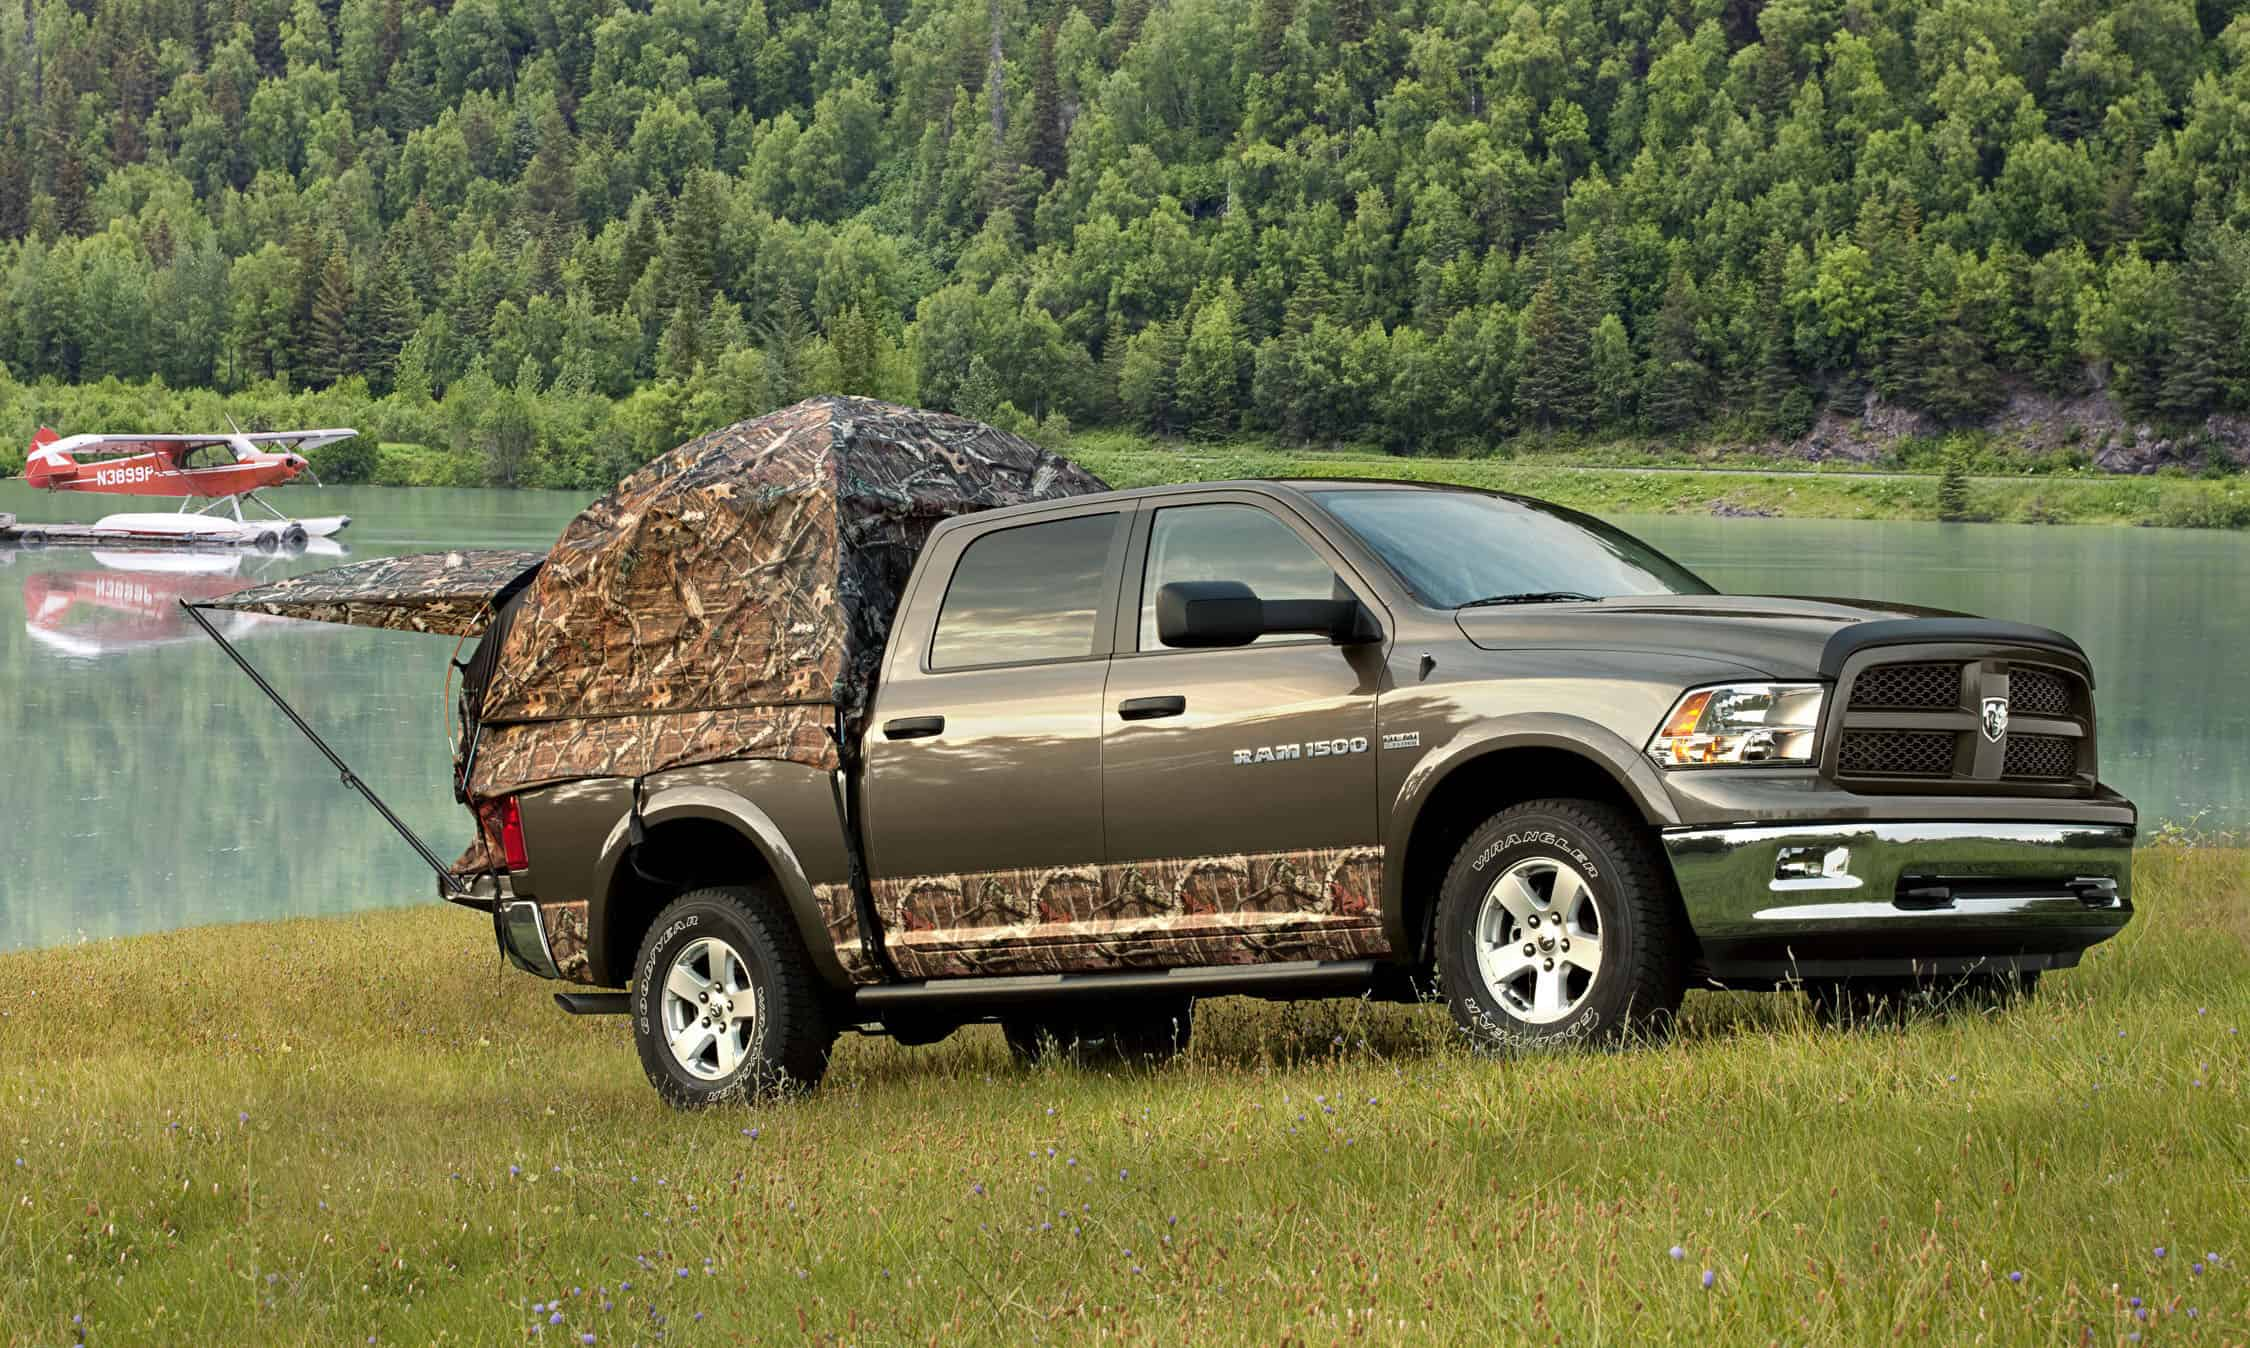 Camo truck bed tent on a pickup near a lake